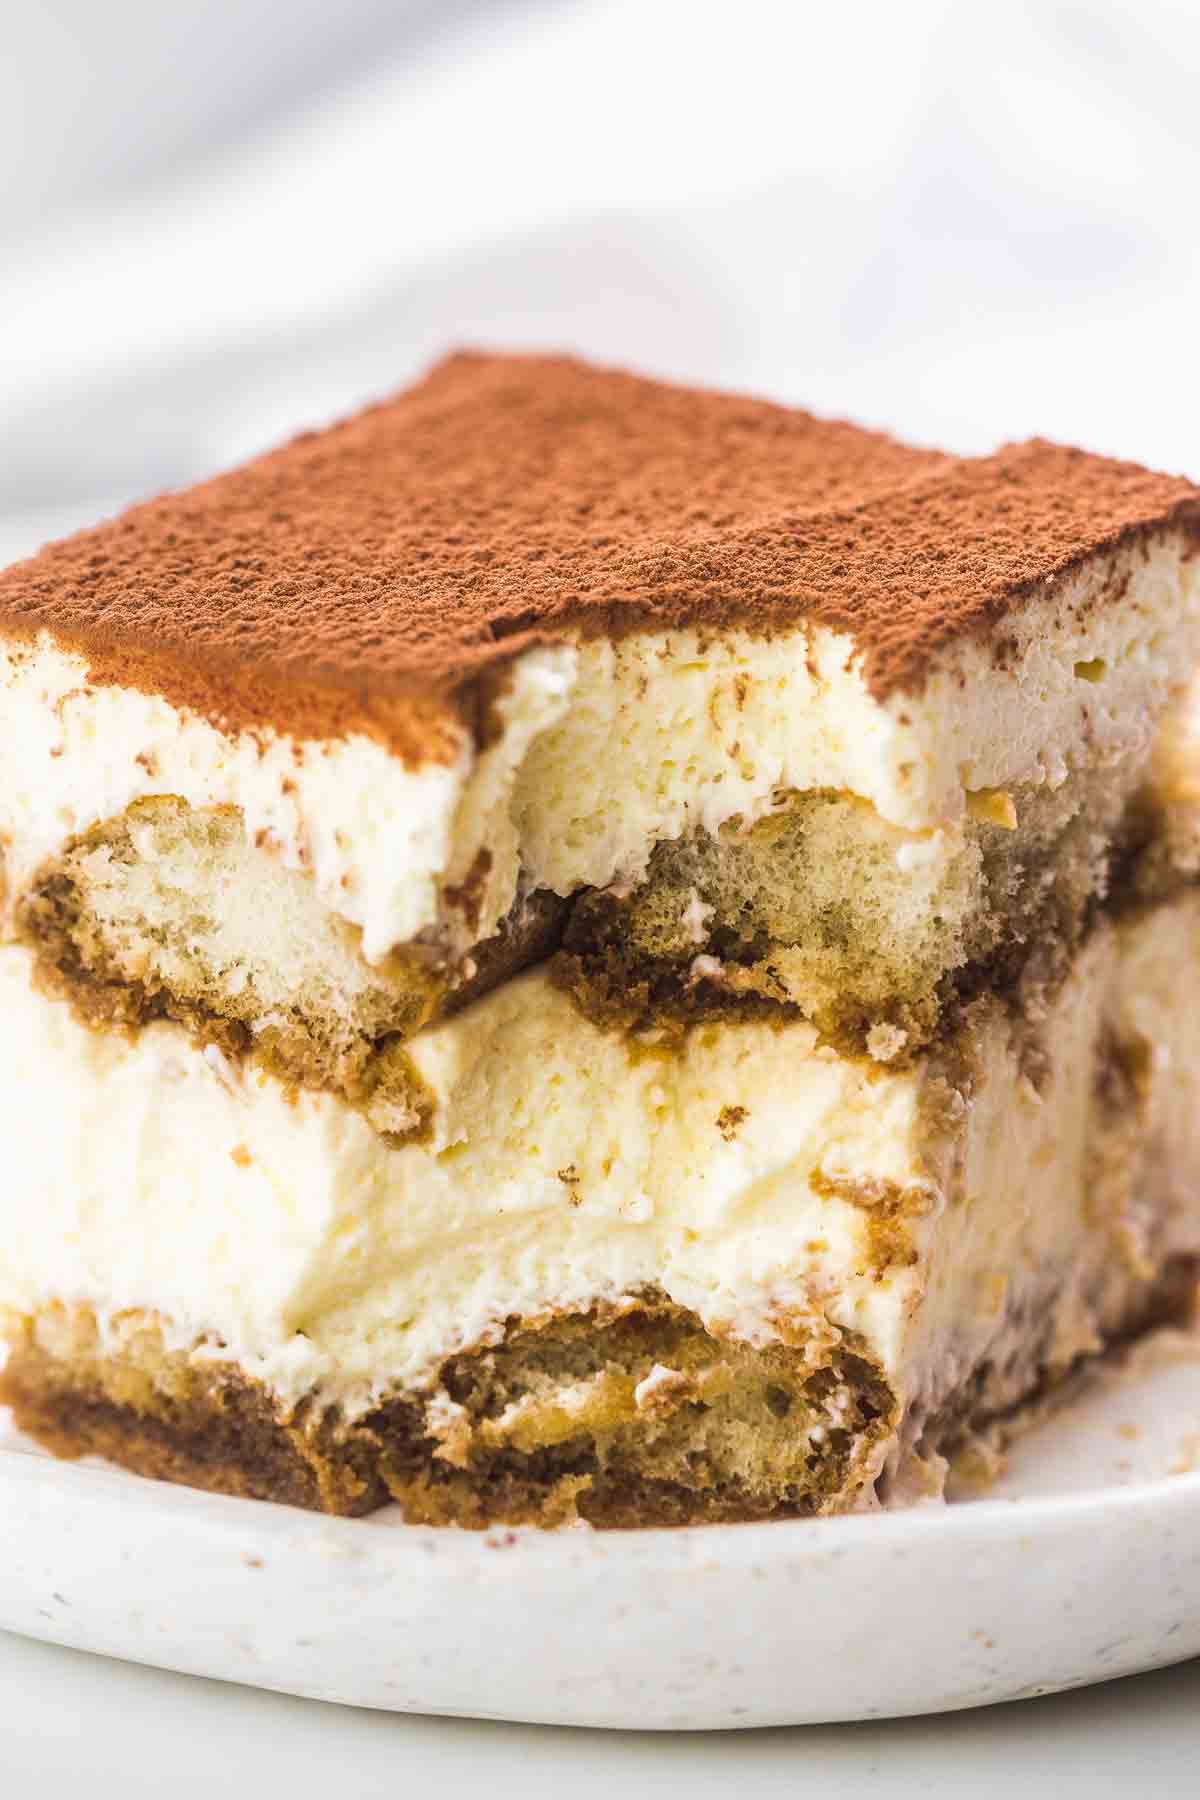 A slice of tiramisu served on a white plate, showing the layers of the cake.